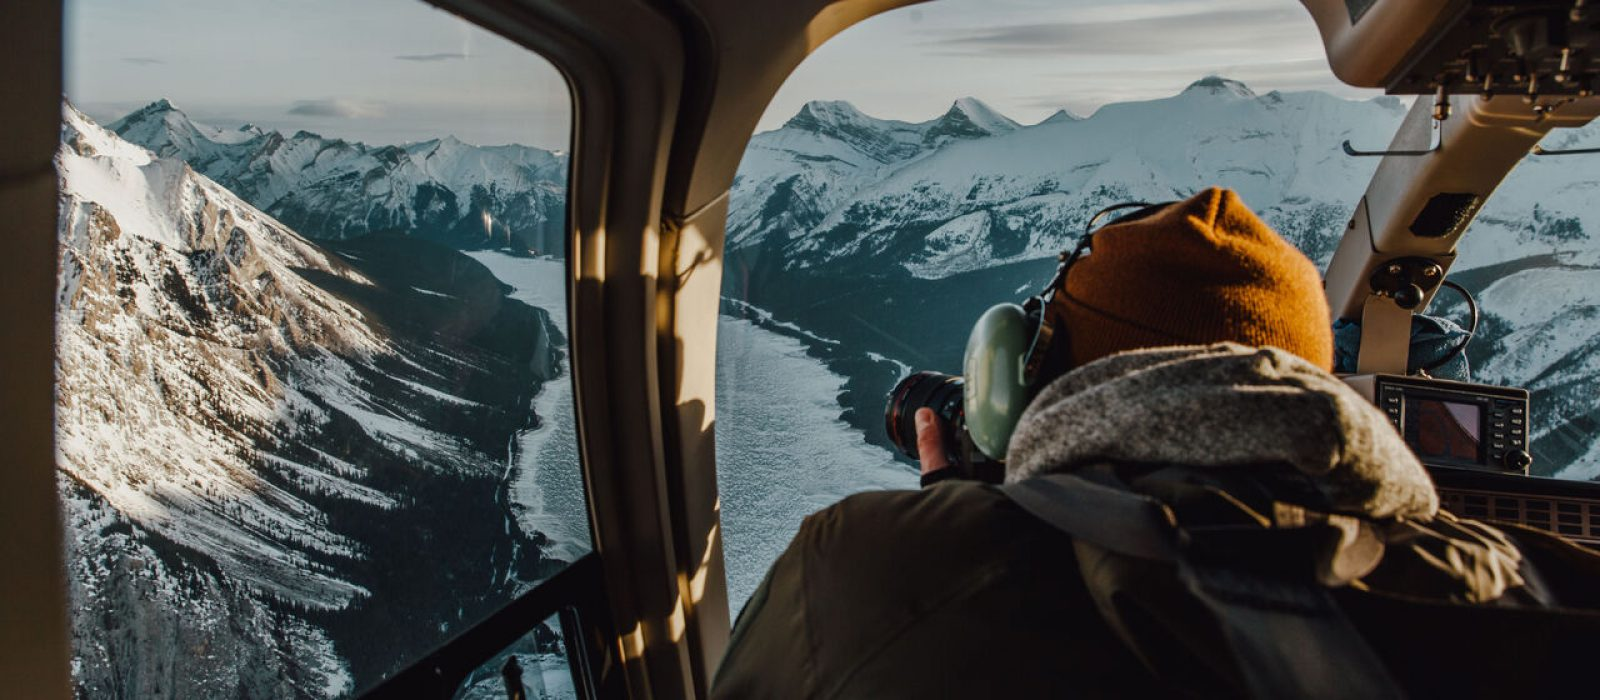 Helicopter tour over the Canadian Rockies.